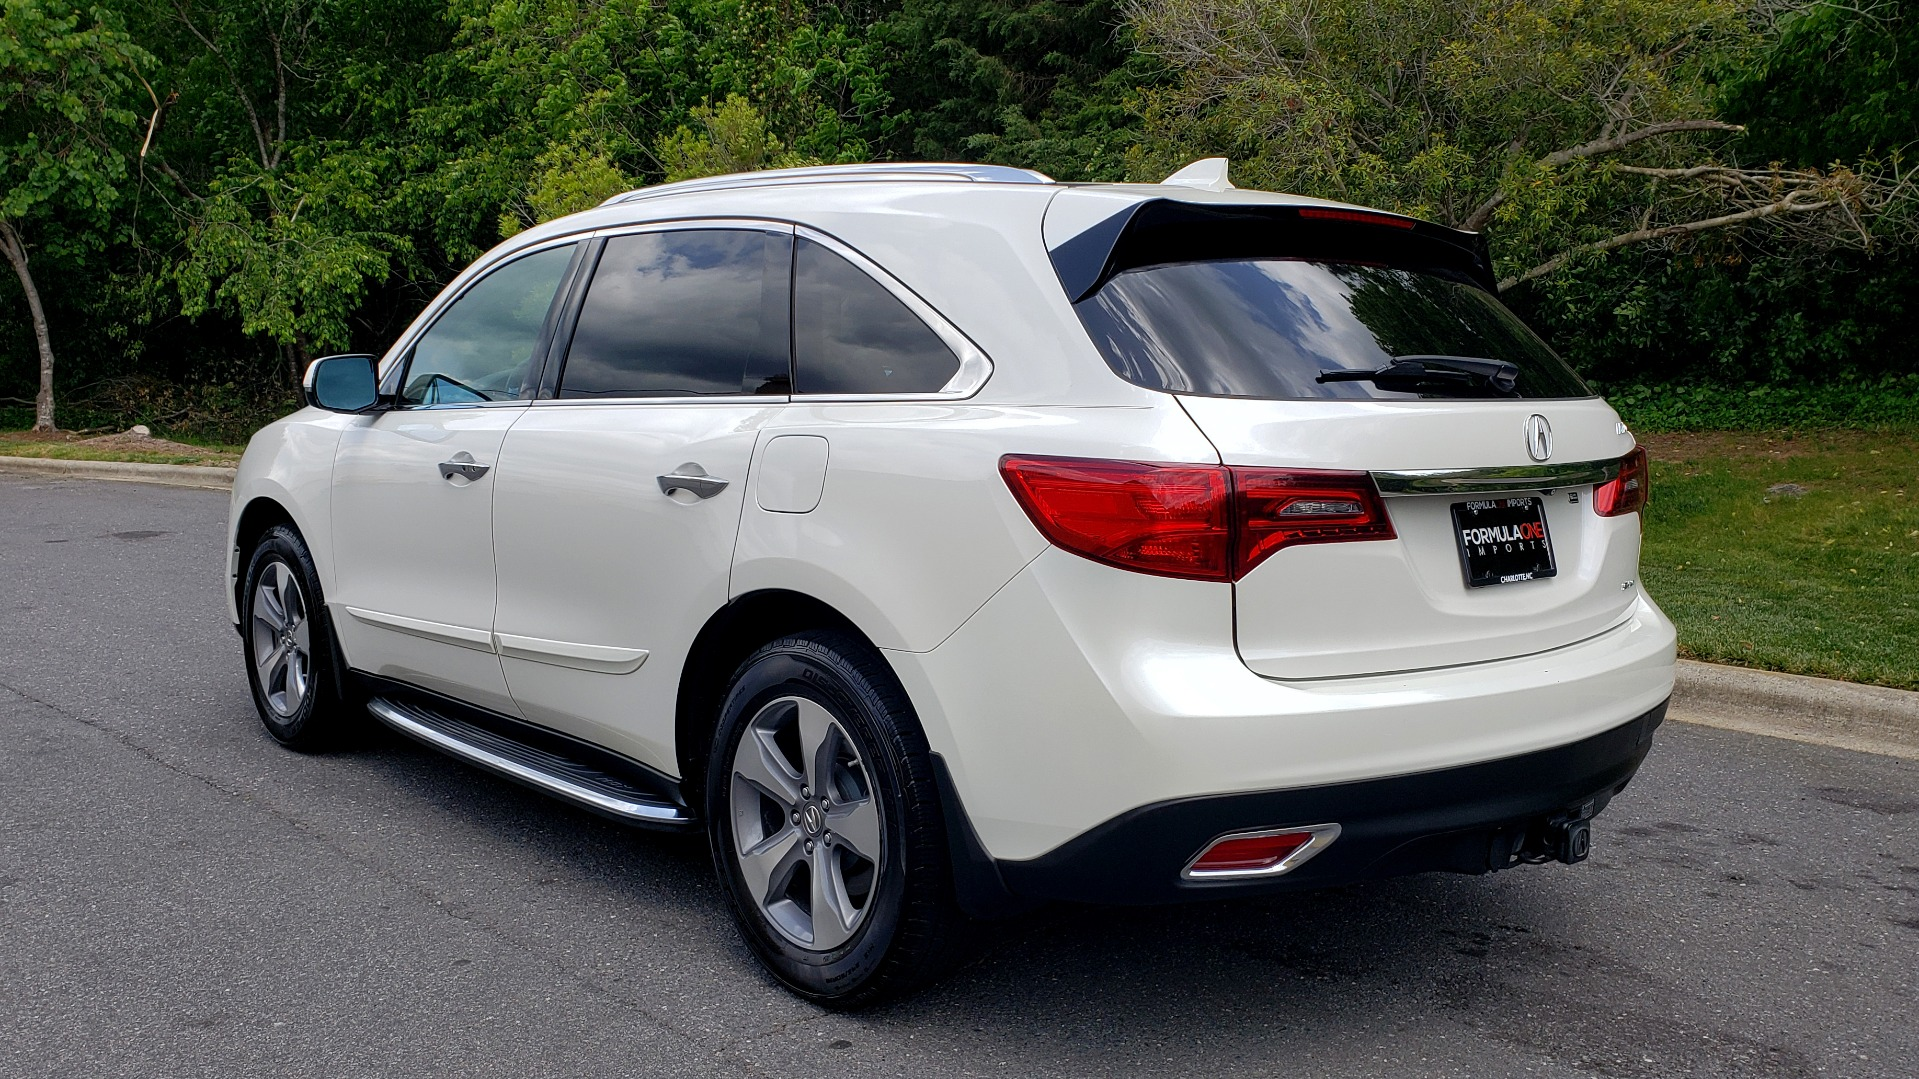 Used 2014 Acura MDX AWD / NAV / SUNROOF / 3-ROW / REARVIEW / PREMIUM SND for sale Sold at Formula Imports in Charlotte NC 28227 3